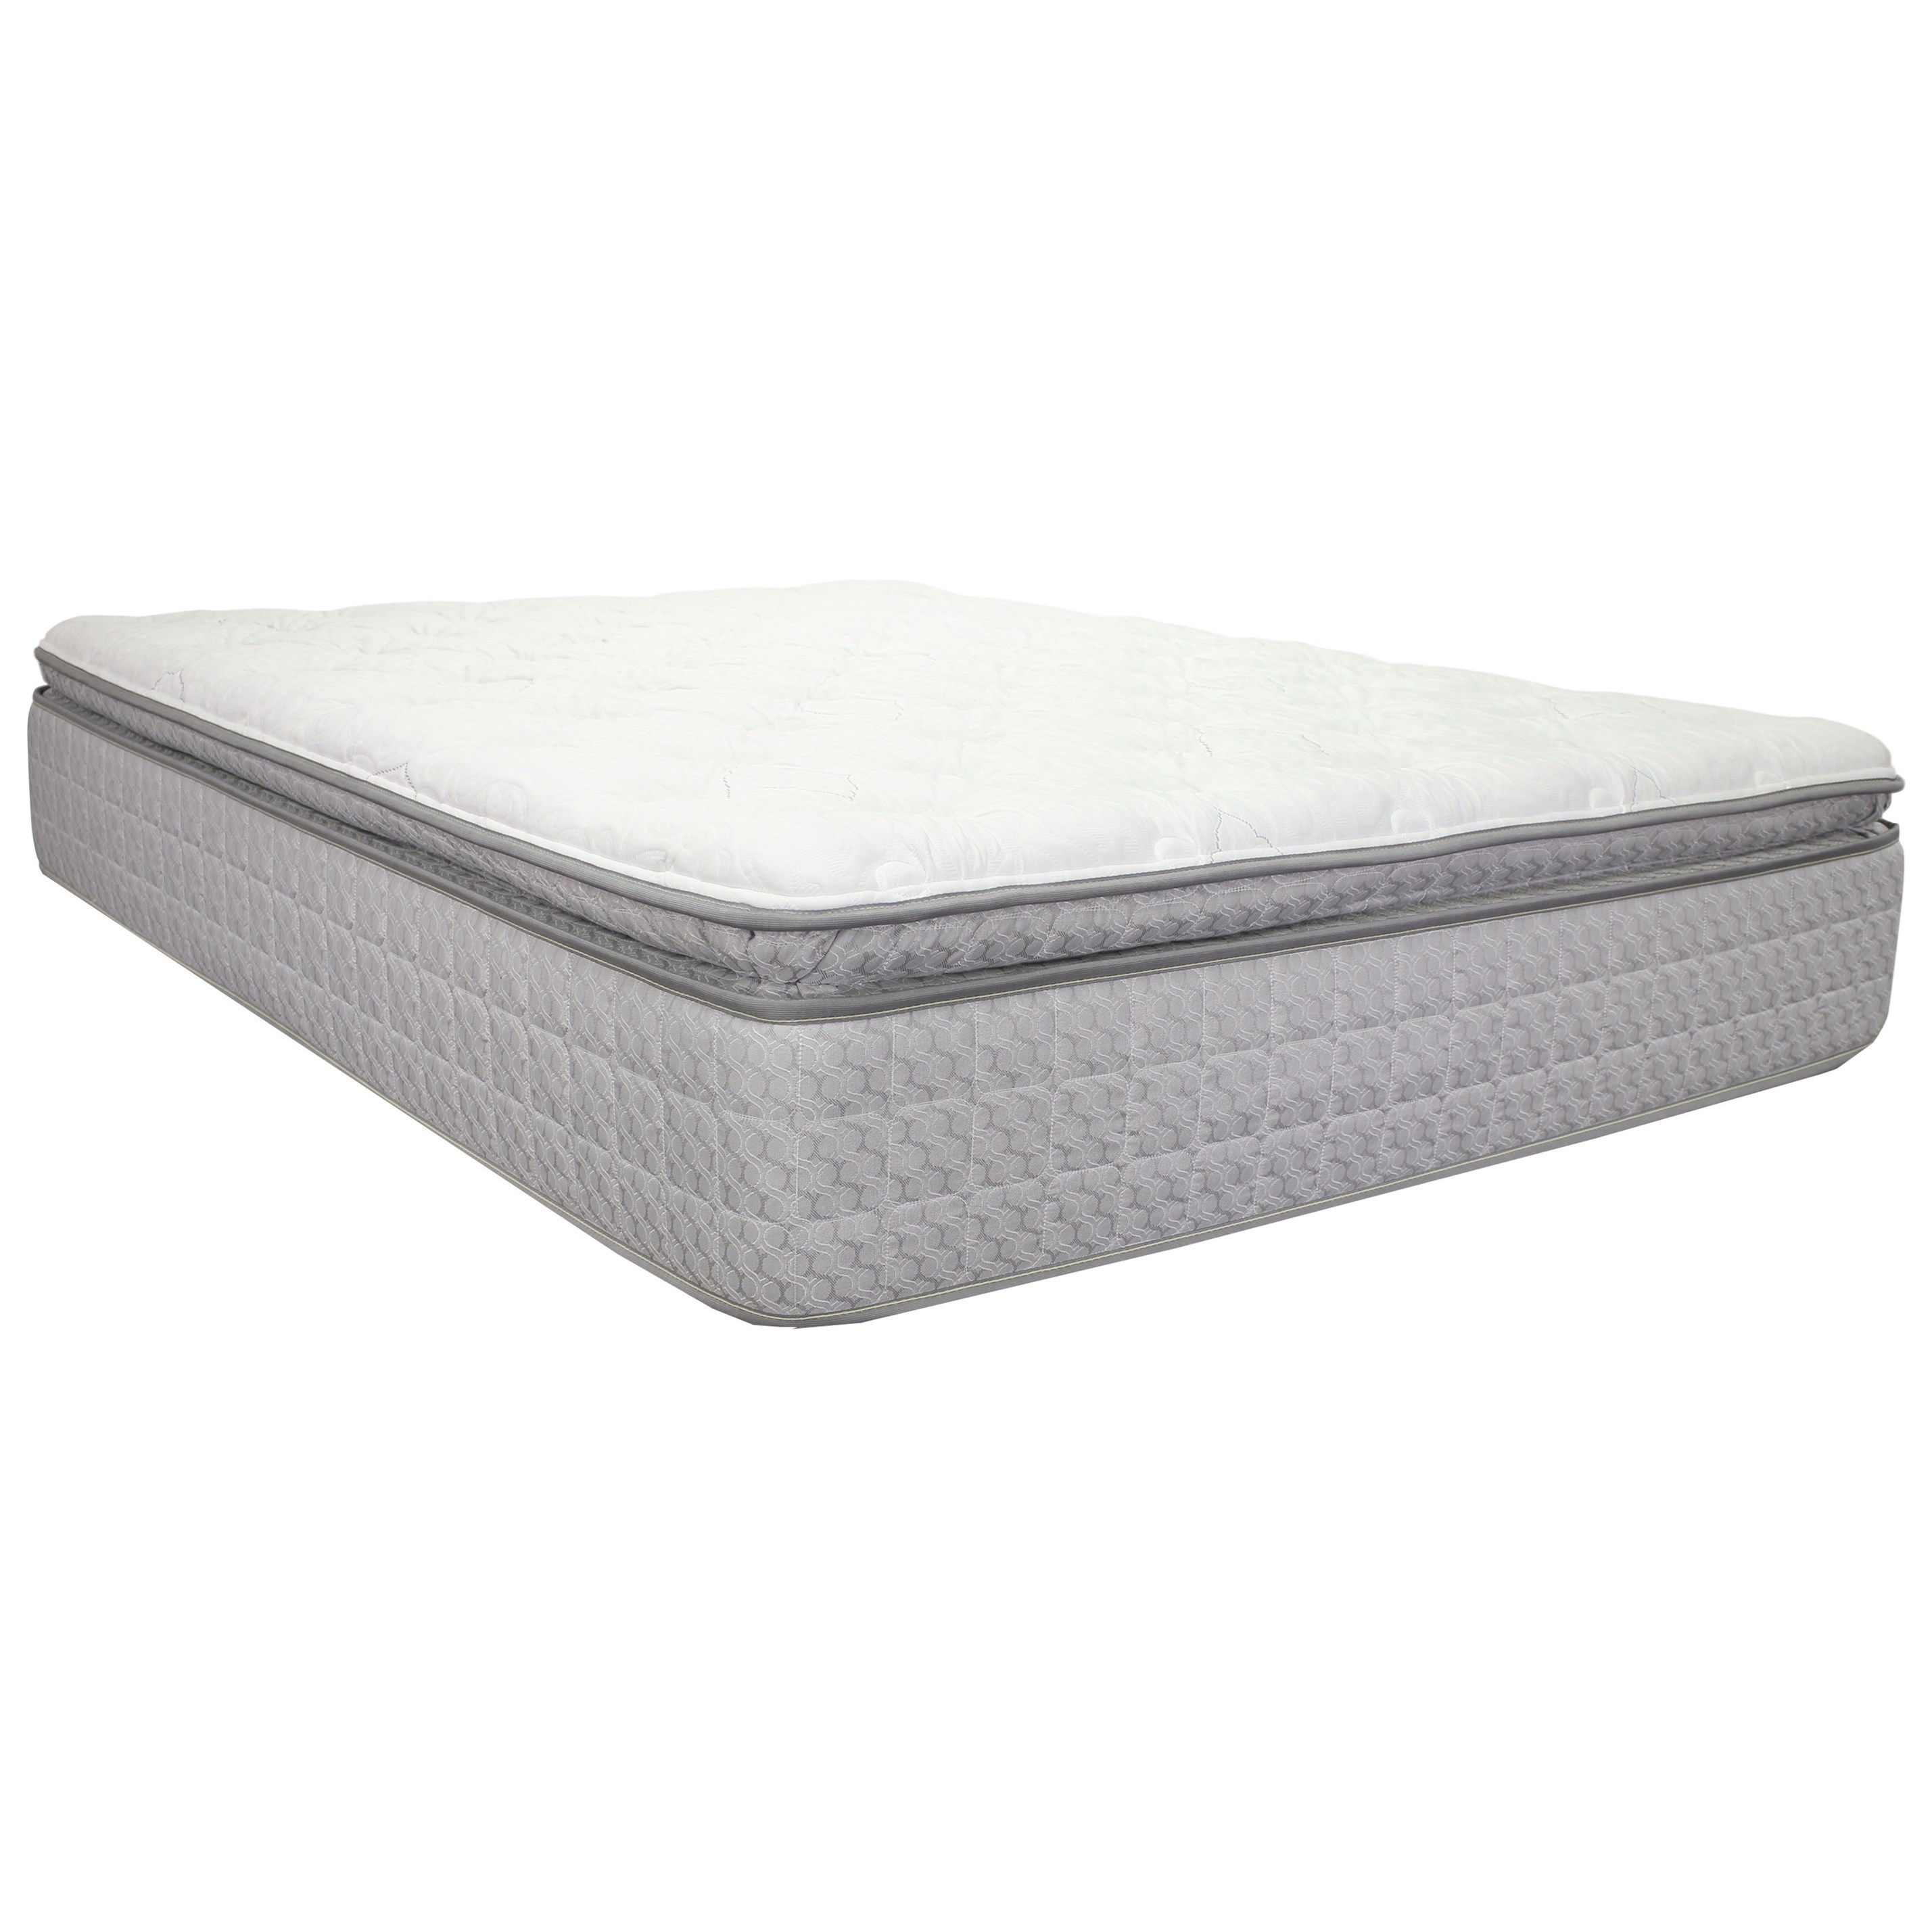 "Full 14"" Pillow Top Mattress"